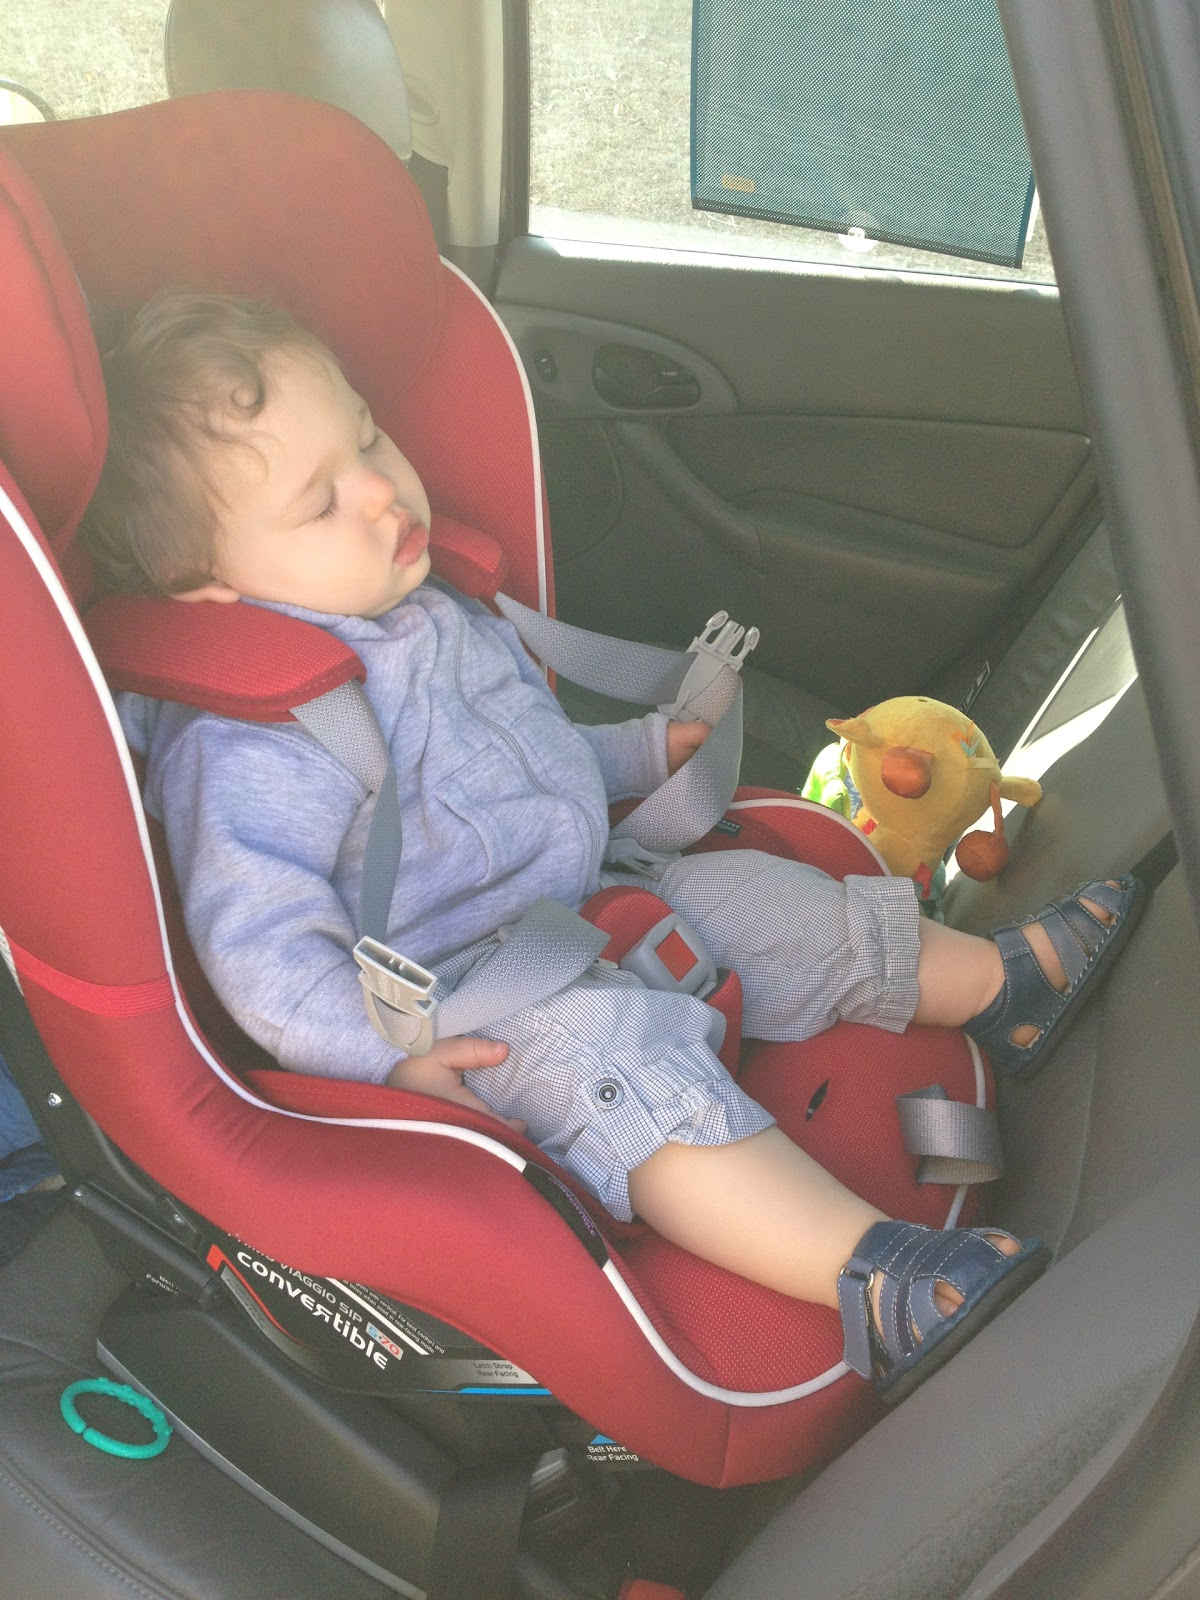 We Recently Got A Second Car Seat For Our What If I Accidentally Drive Off In The With And There S An Emergency At Home